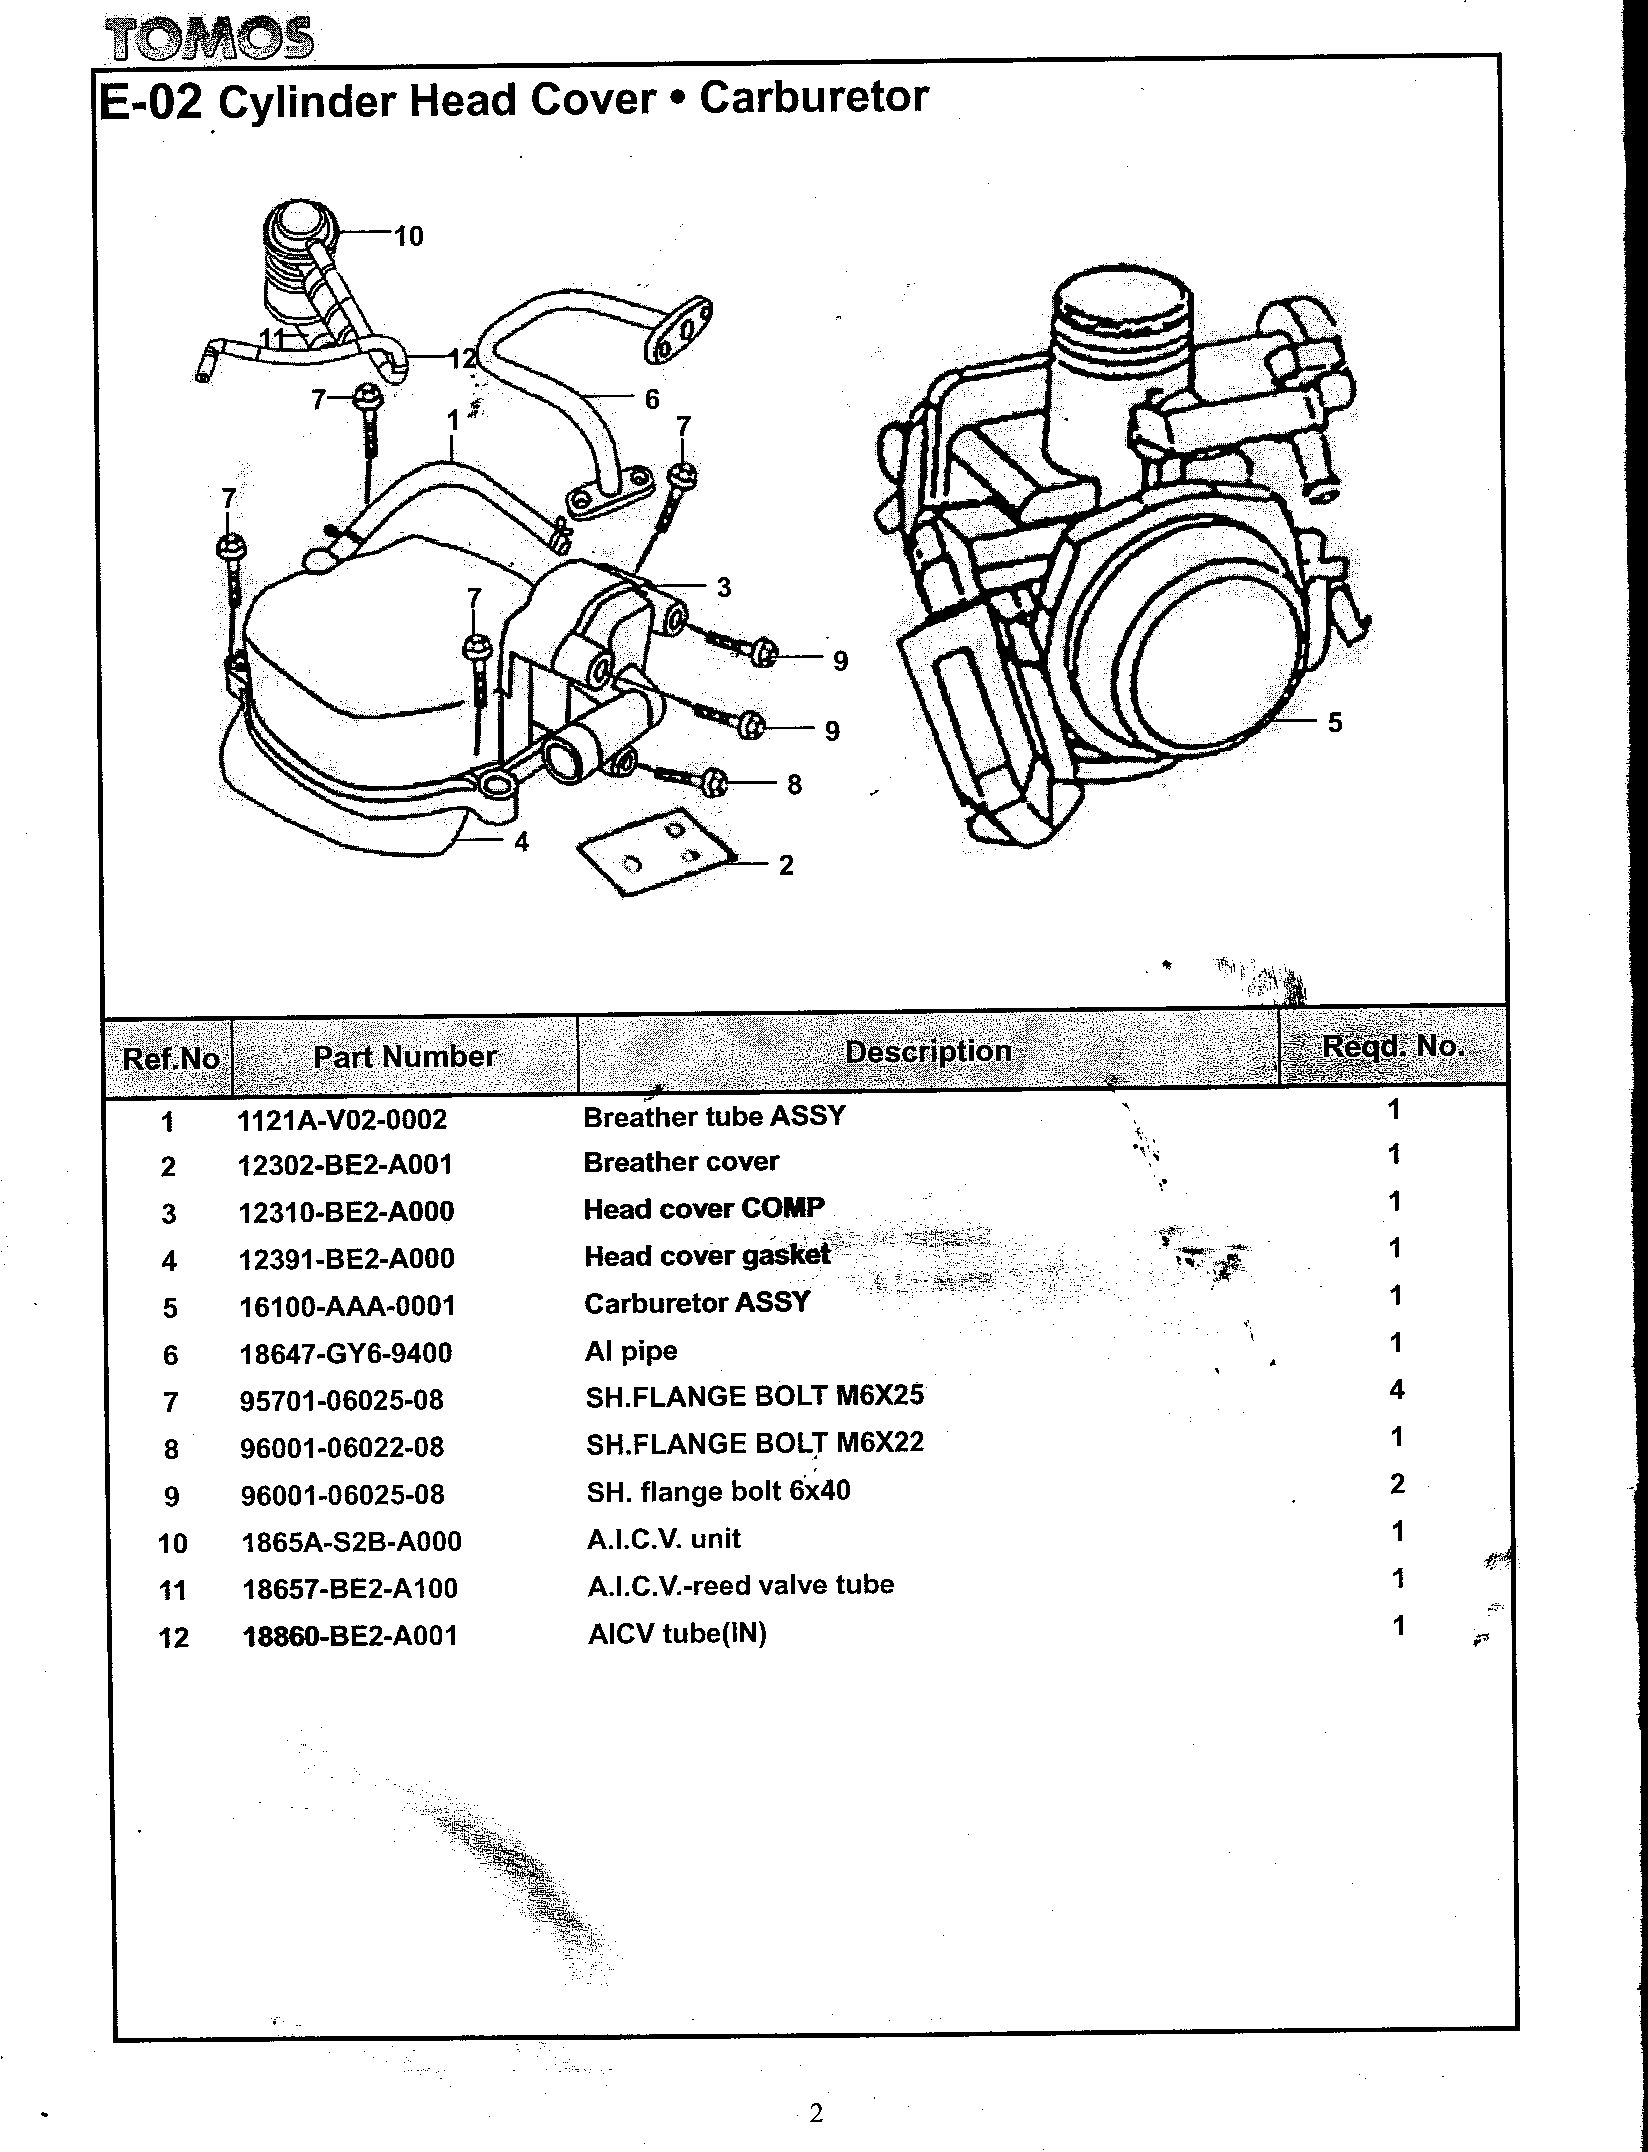 tomos nitro 50 wiring diagram wiring library Tomos Sprint Moped e 02 cylinder head cover carburator nitro 50